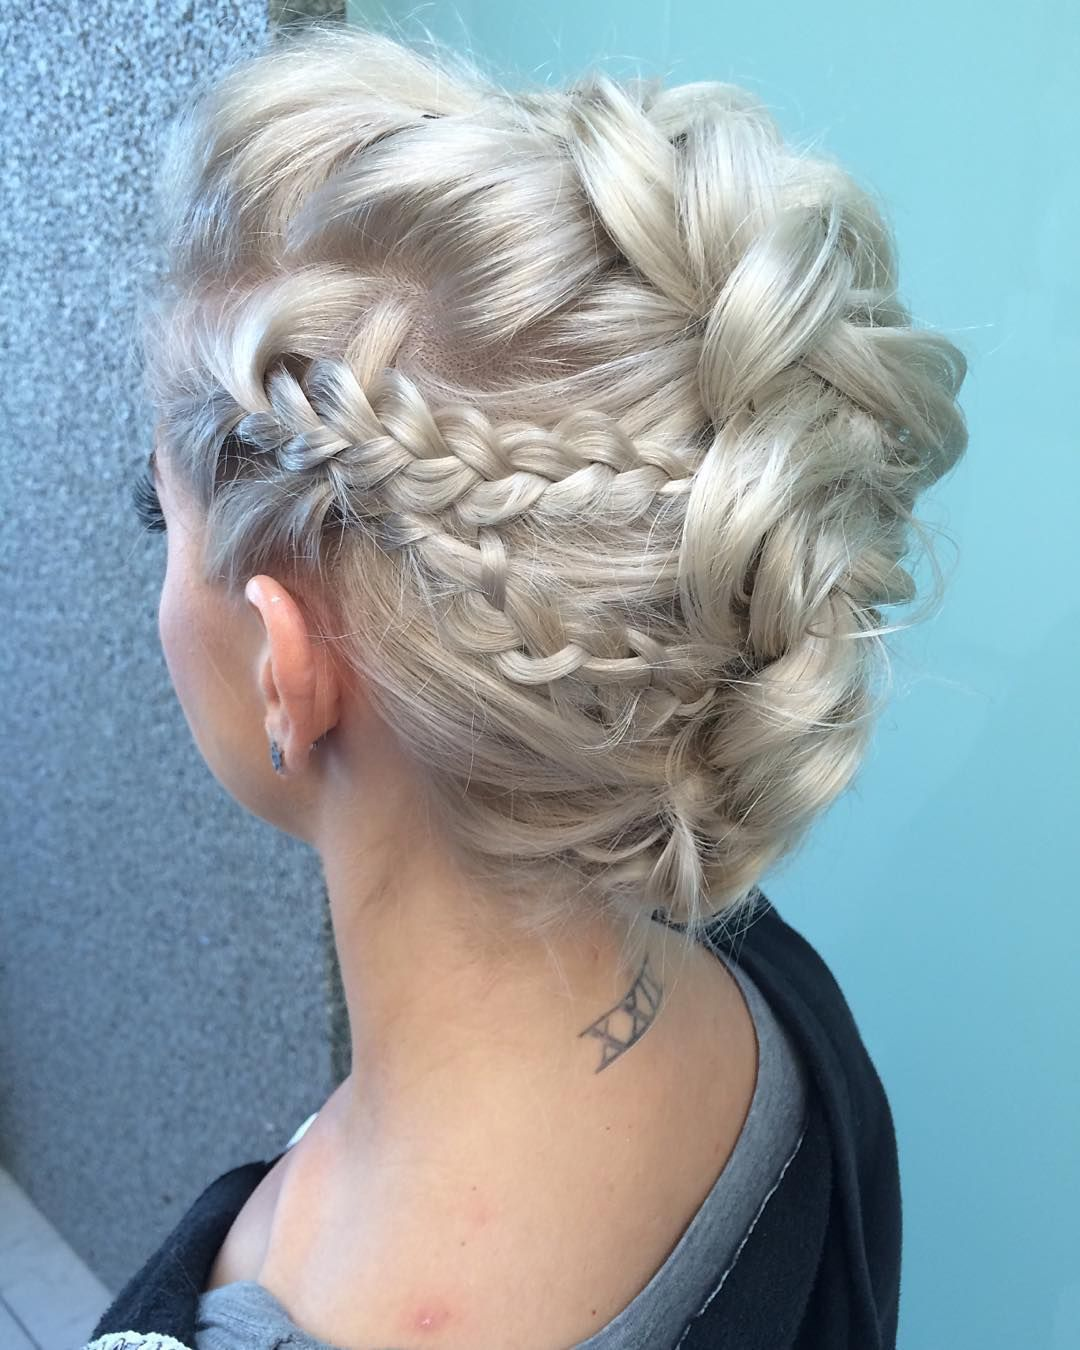 Updo hairstyles for long hair styling updo hairstyles for long